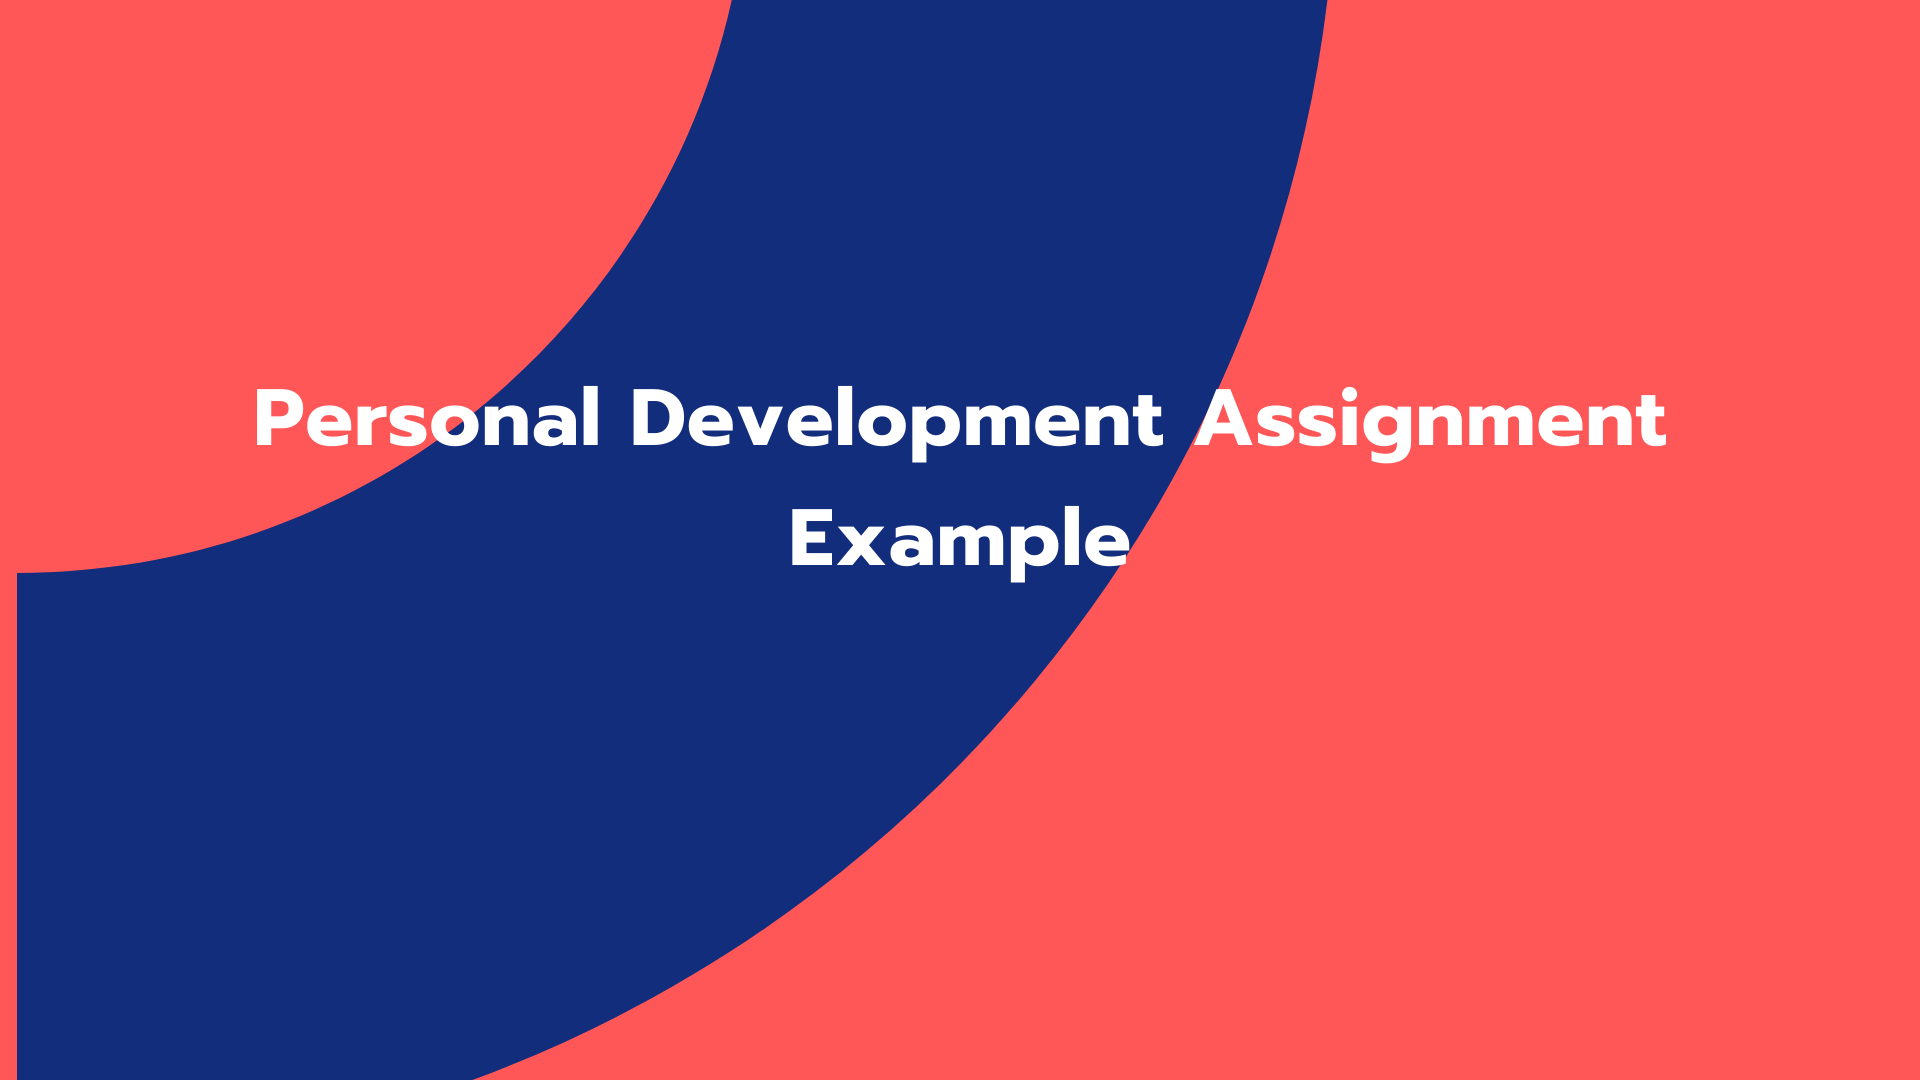 Personal Development Assignment Example